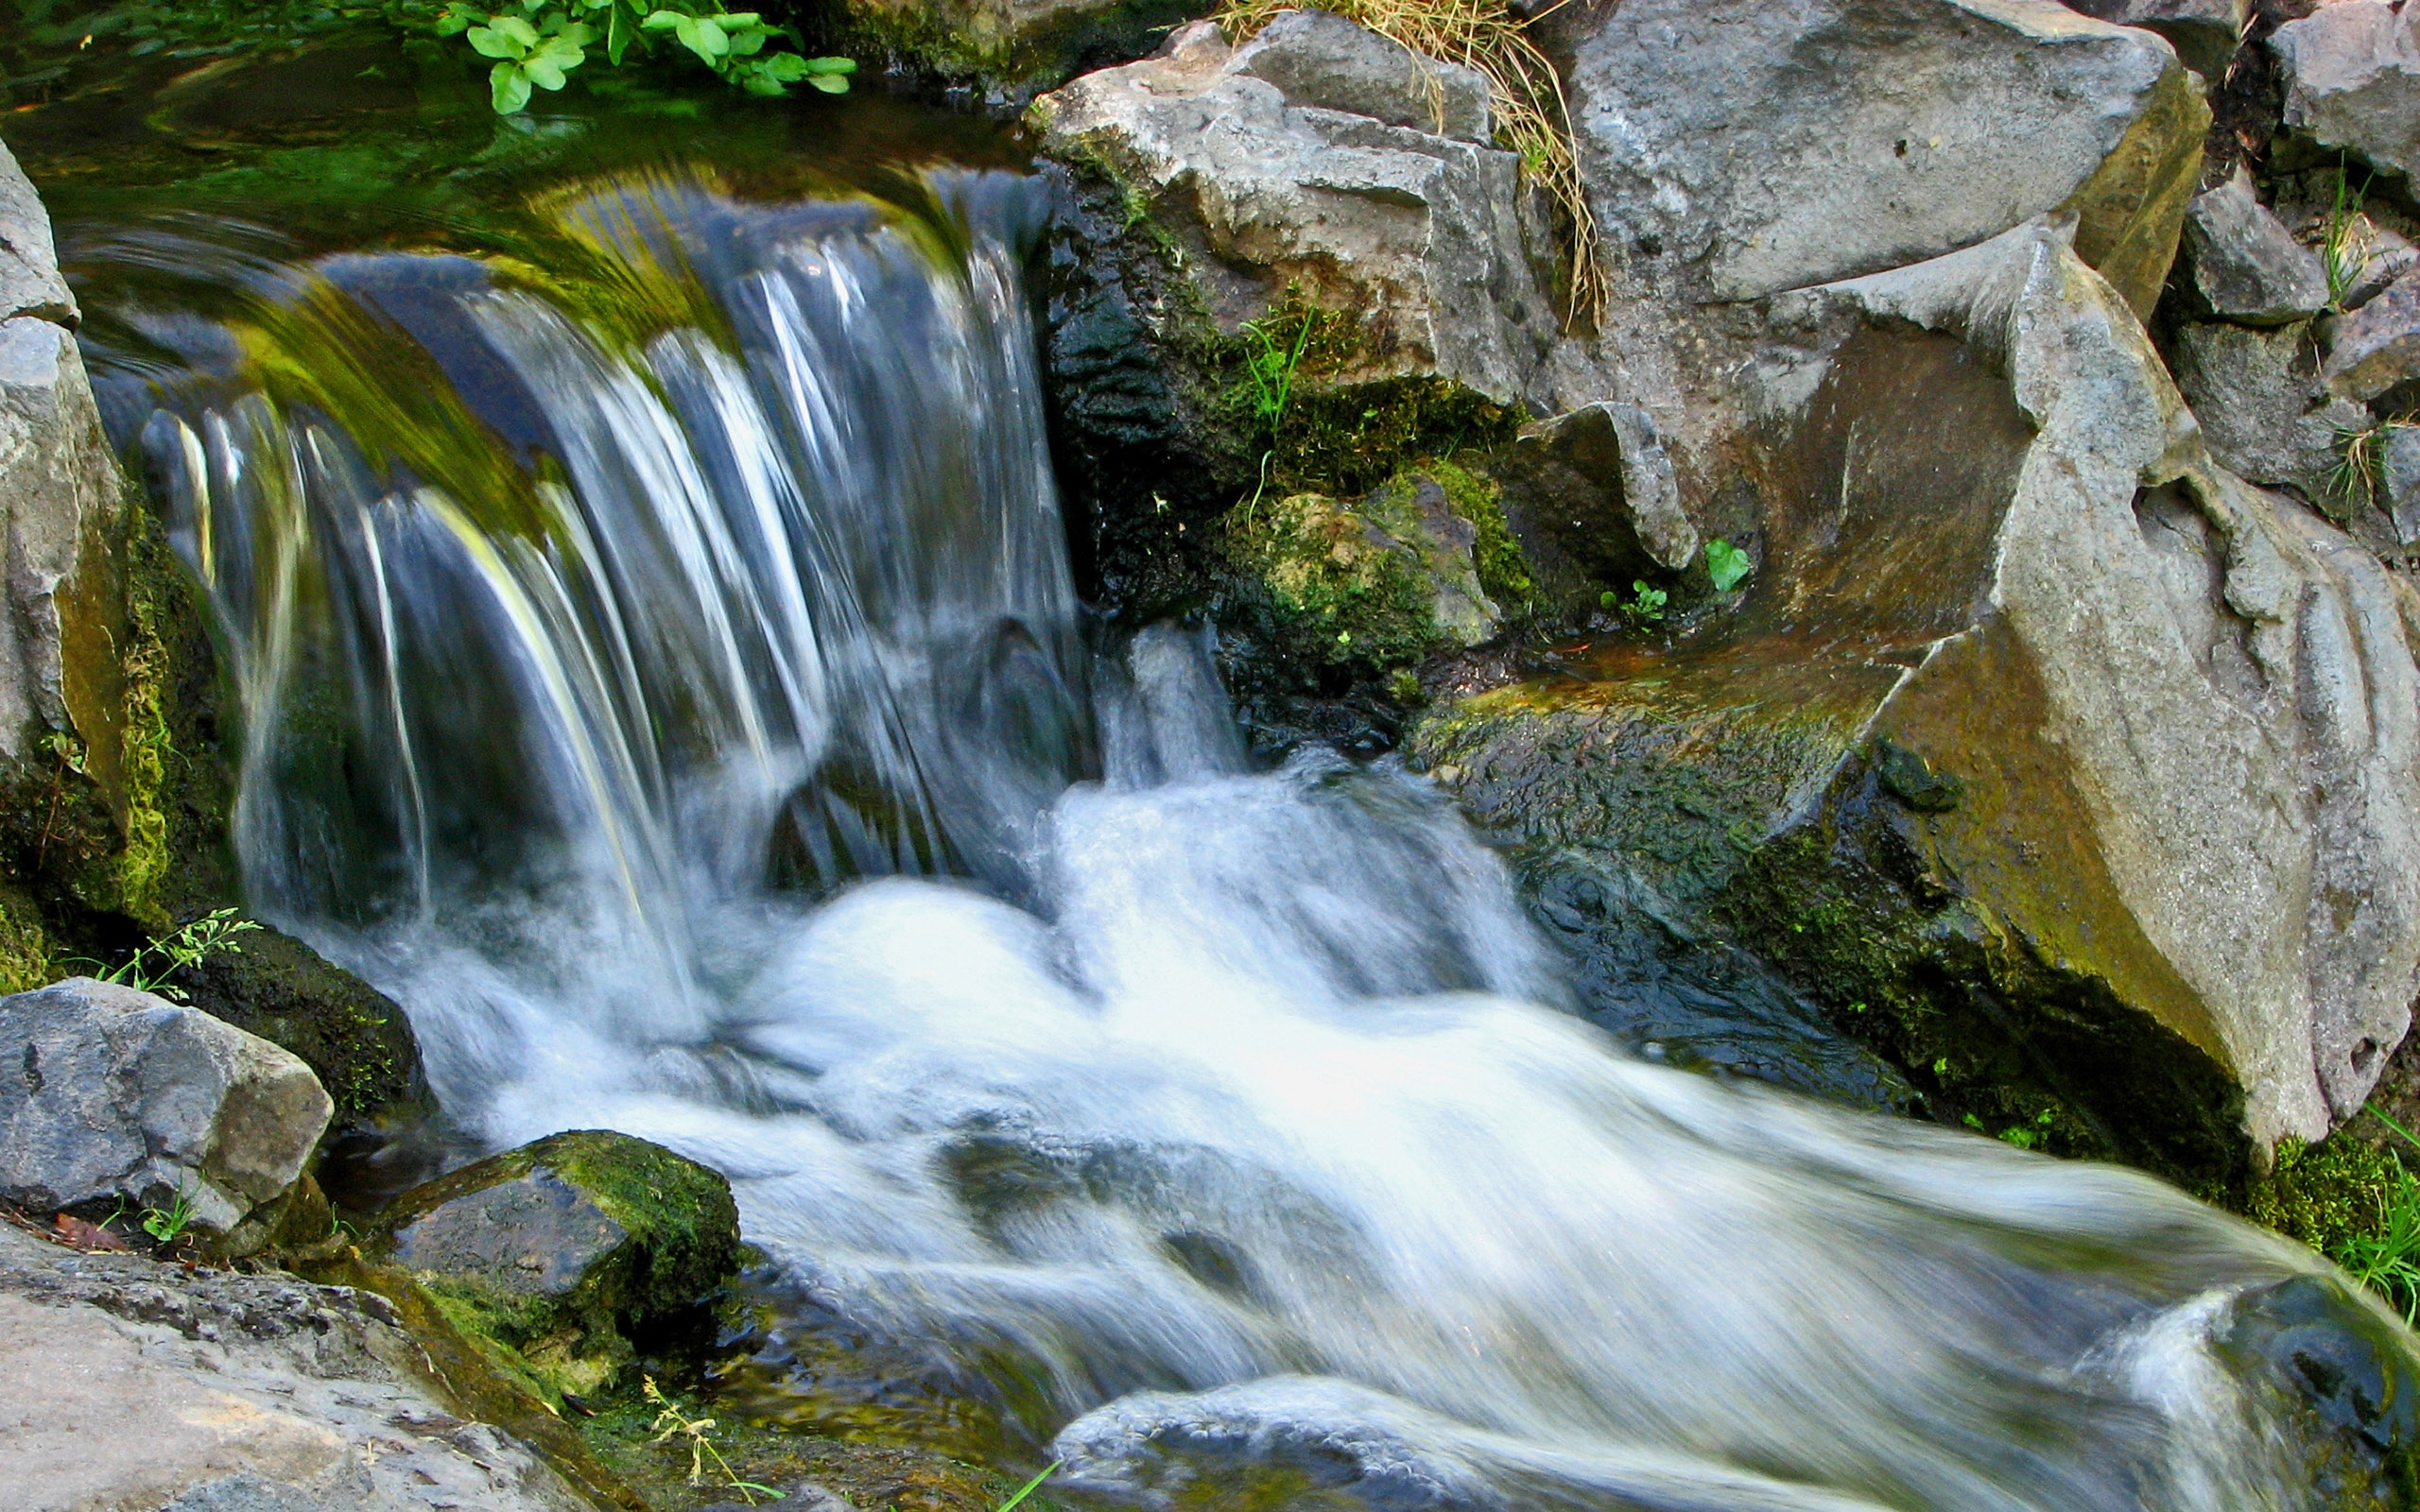 Water flow Wallpapers - 2560x1600 - 1668353